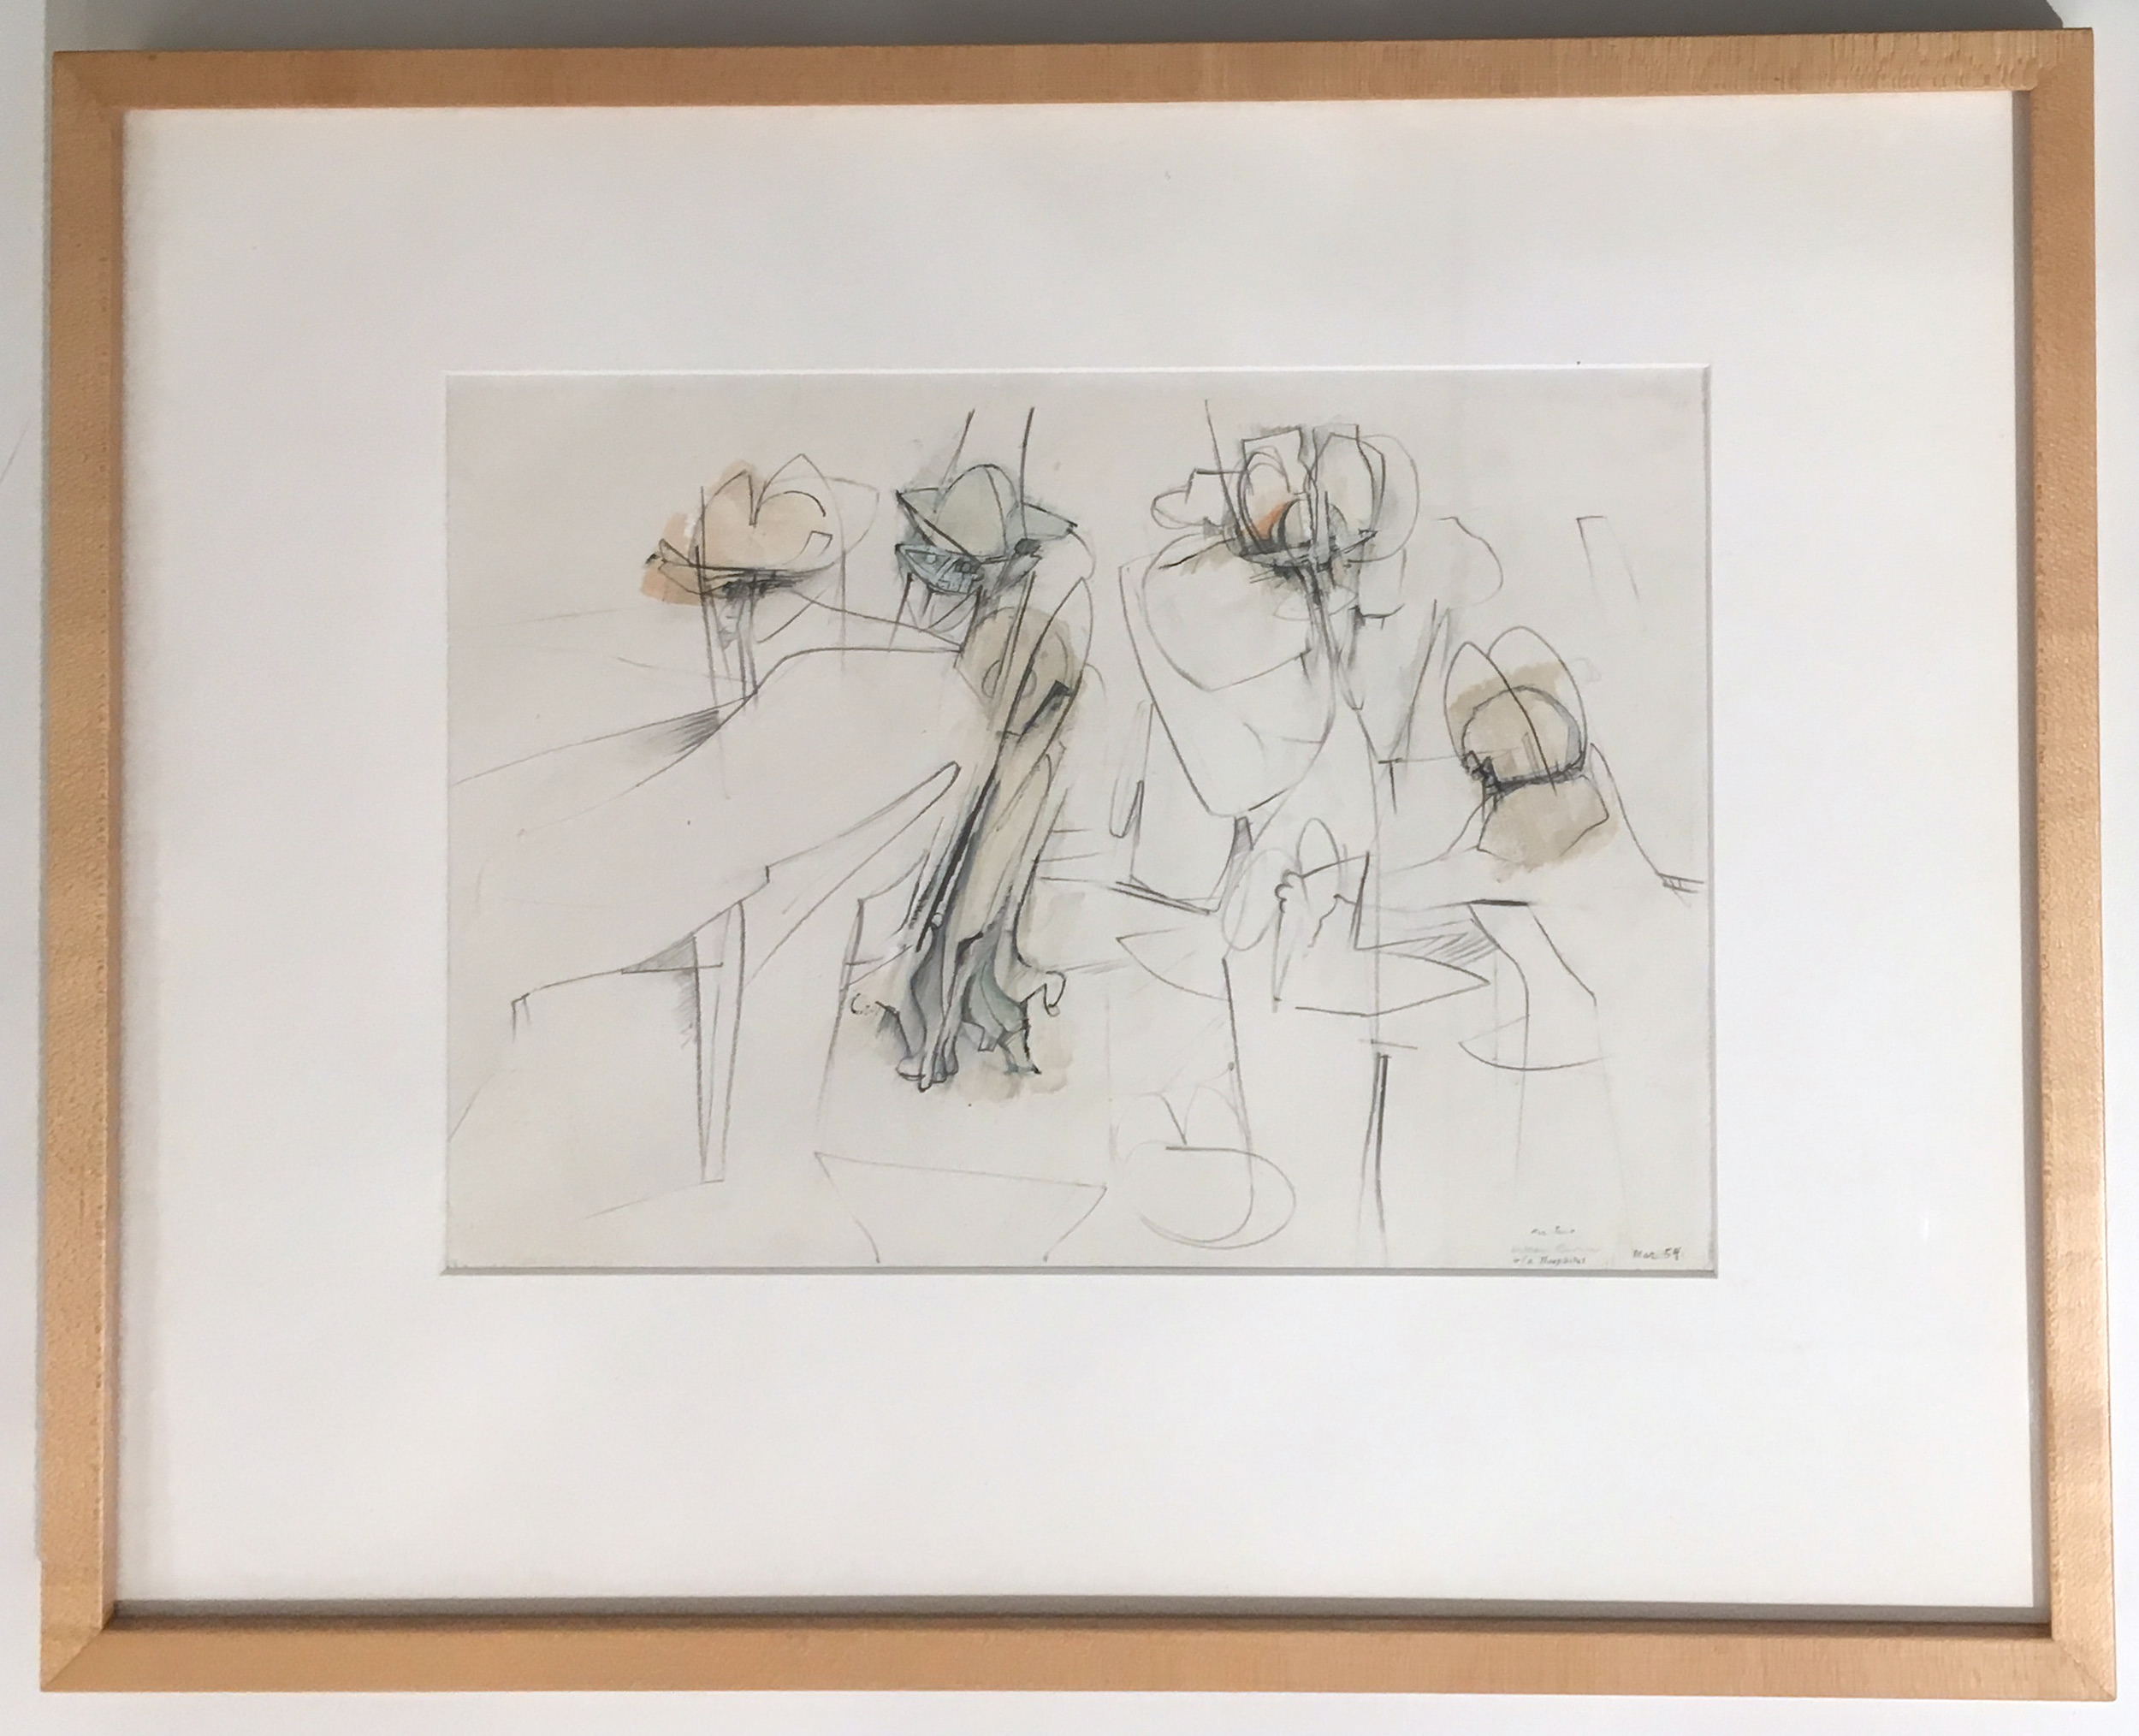 William Theophilus Brown (1919-2012)    Untitled (Study for Football) ,  1954  graphite, ink and color pencil on paper 12 x 14 inches image size 21 x 22 inches framed size  $15,000 Offered at: $9,000      I'm Interested!